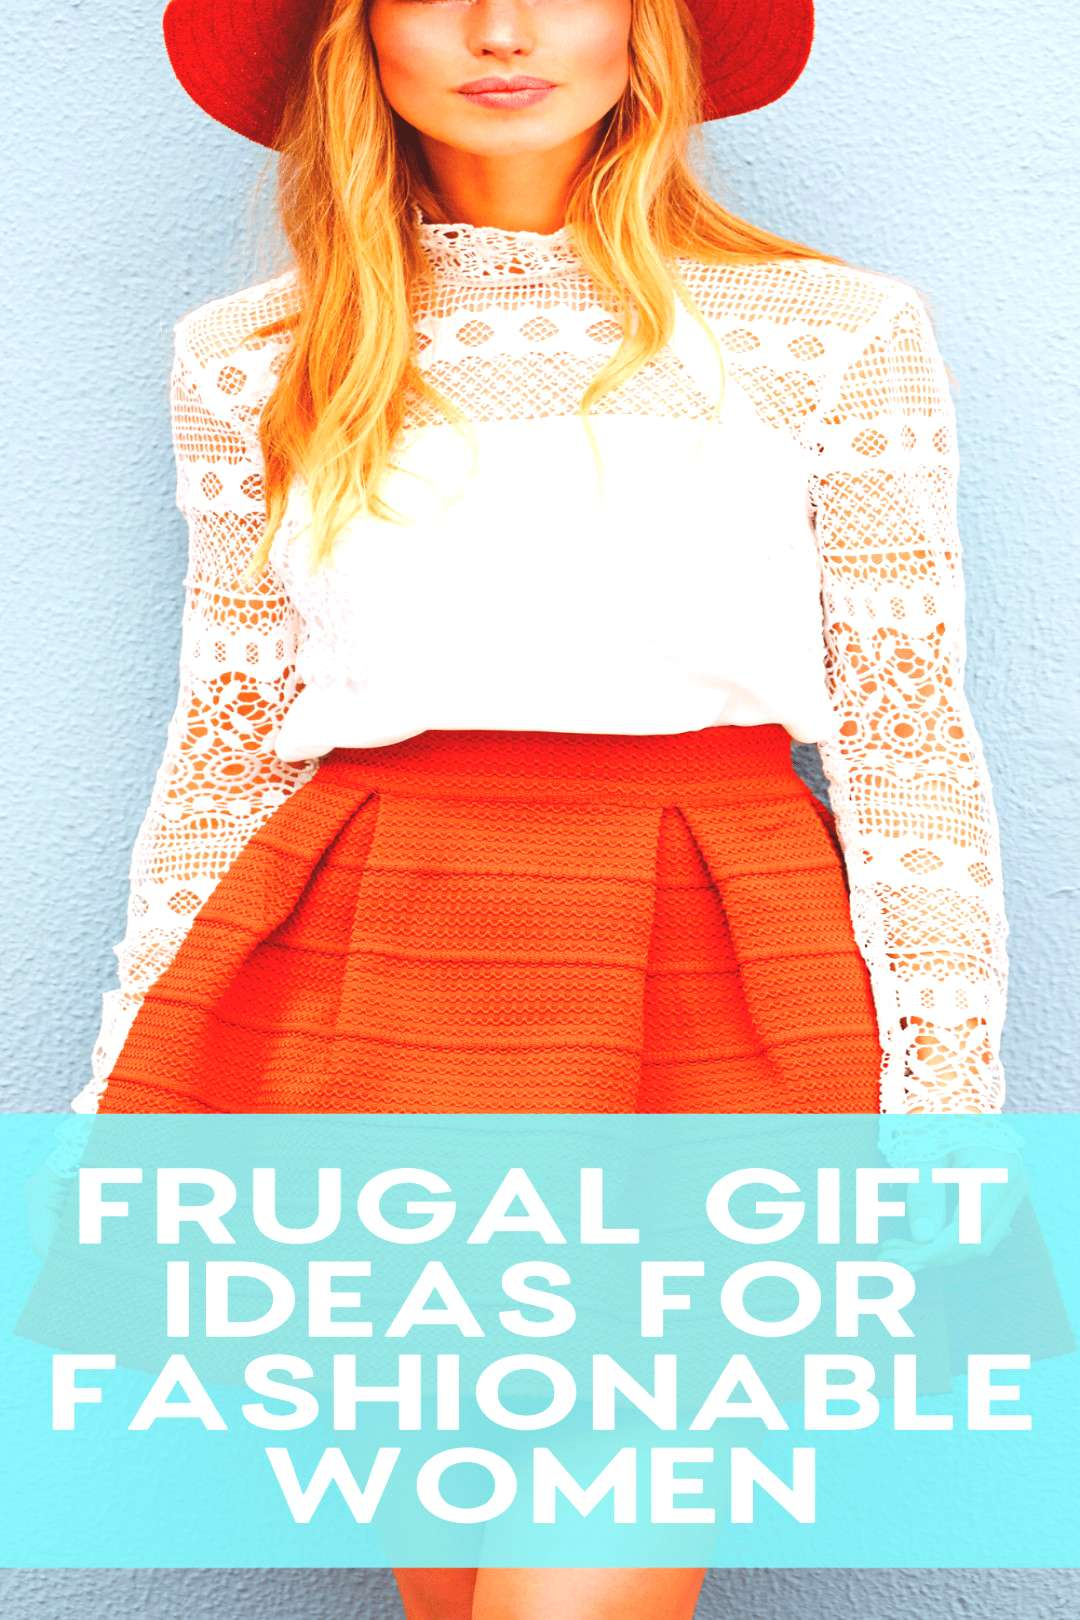 Frugal Gift Ideas For Fashionable Women - Gold Miss Frugal Gift Ideas For Fashionable Women Find t